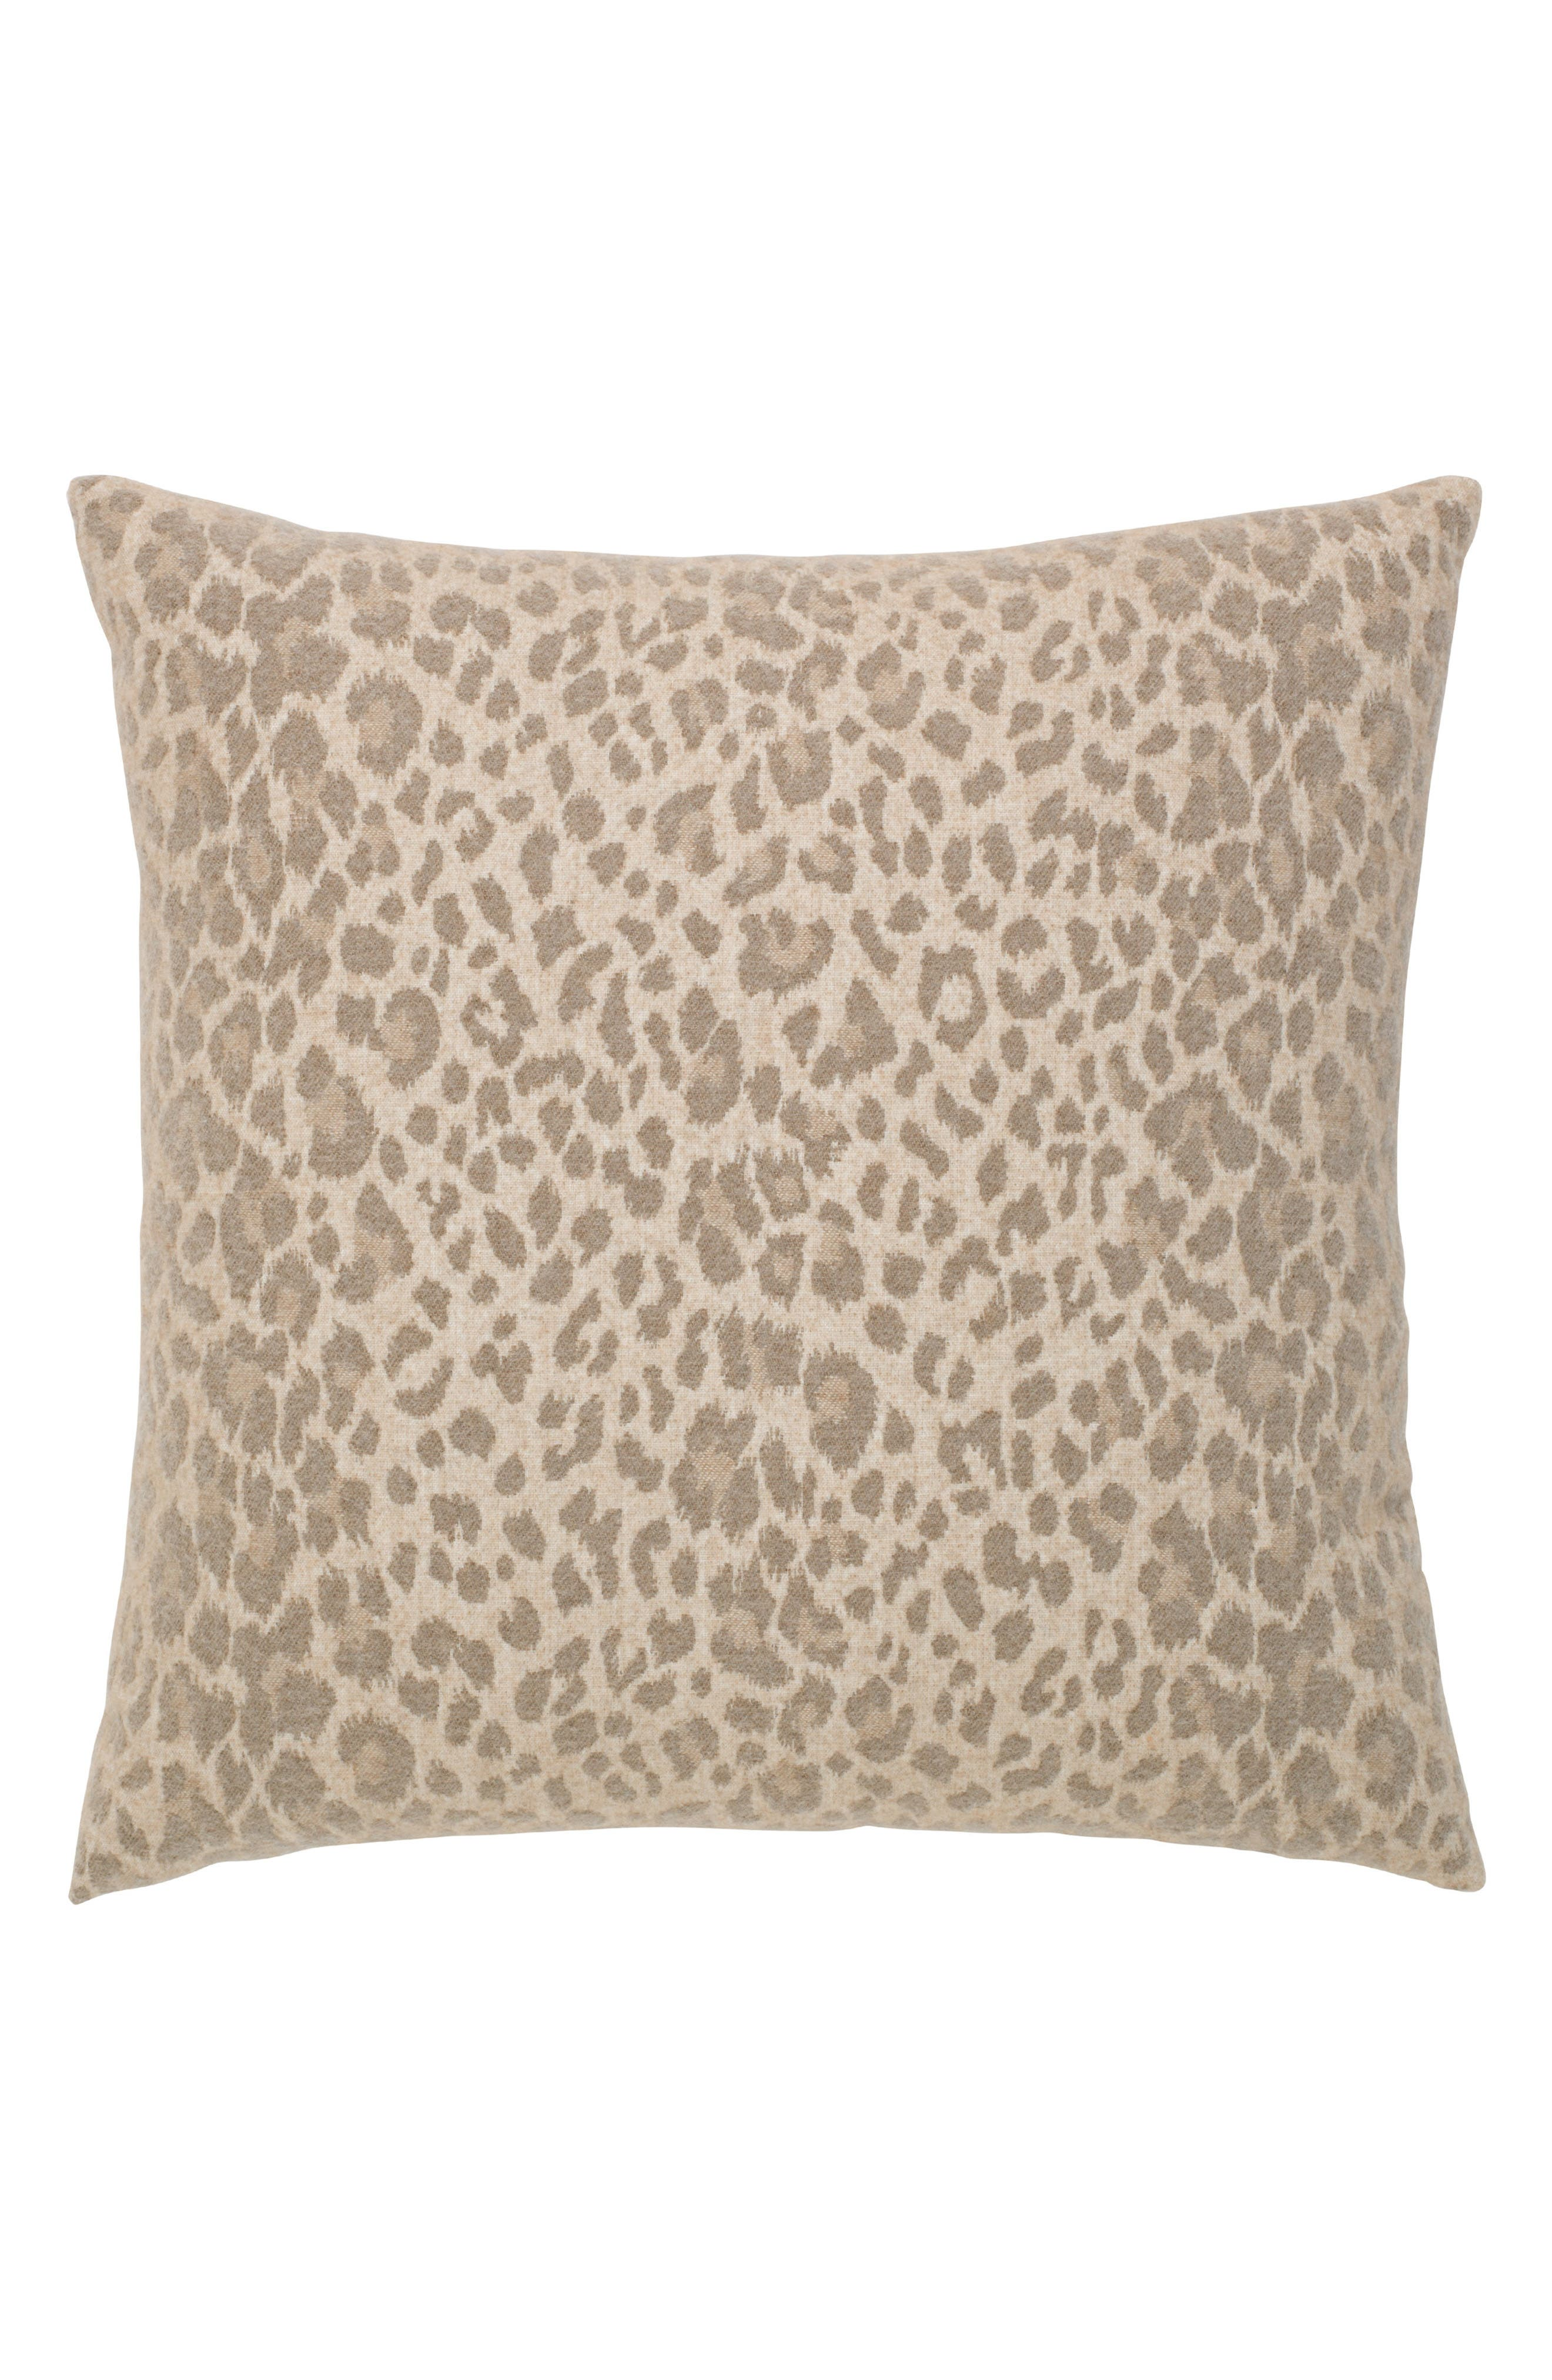 Animal Print Indoor/Outdoor Accent Pillow,                             Main thumbnail 1, color,                             Brown